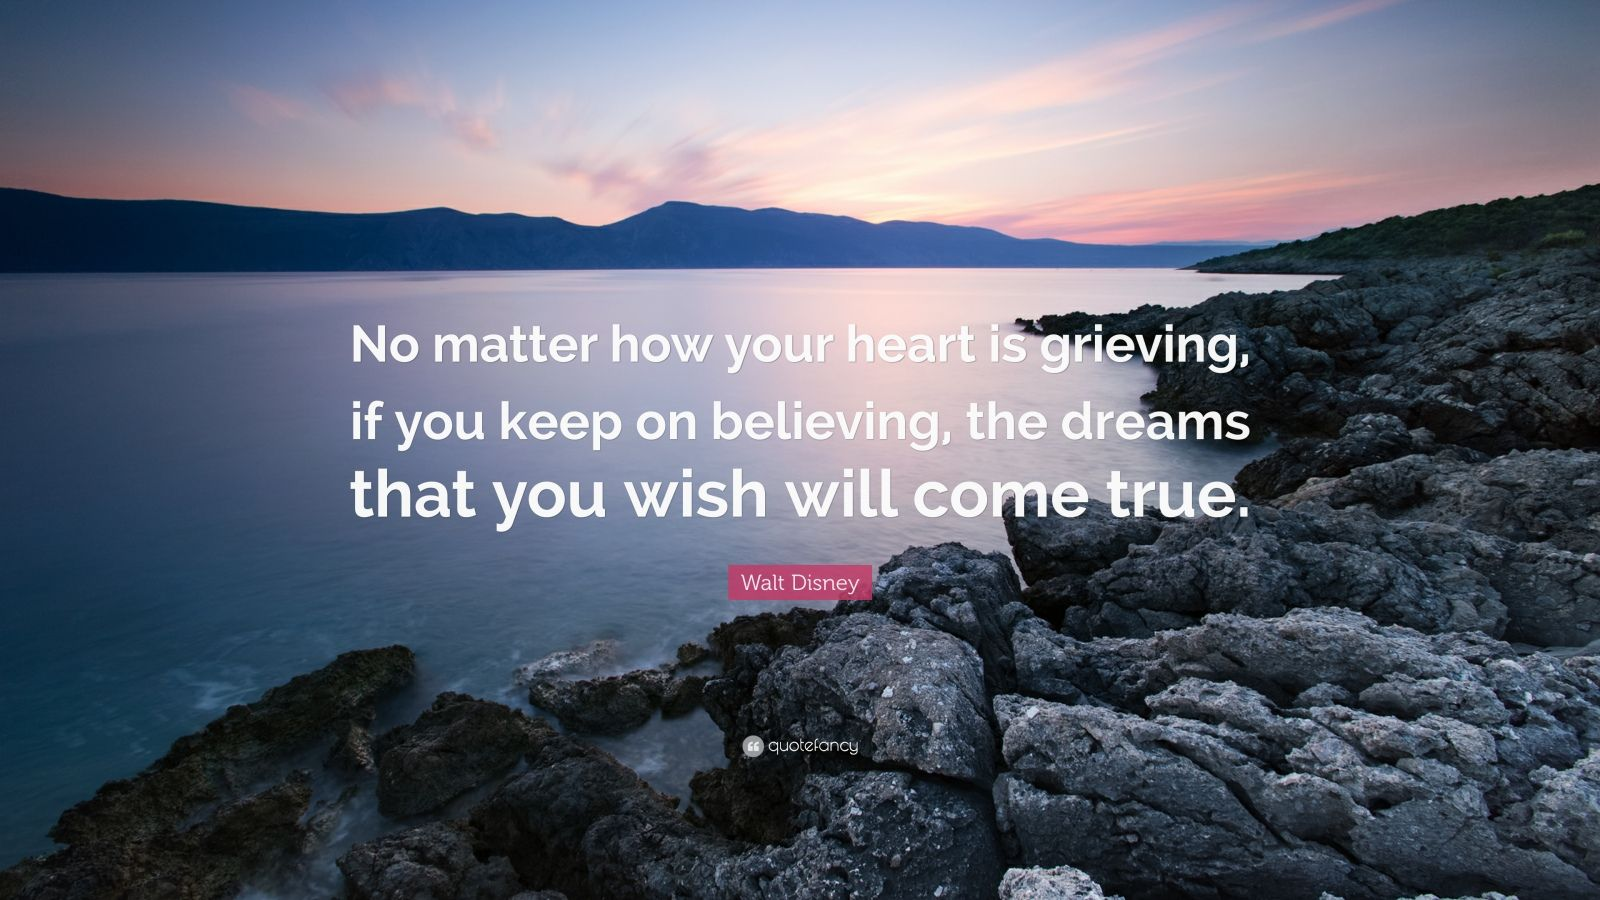 """Walt Disney Quote: """"No matter how your heart is grieving, if you keep on believing, the dreams that you wish will come true."""""""